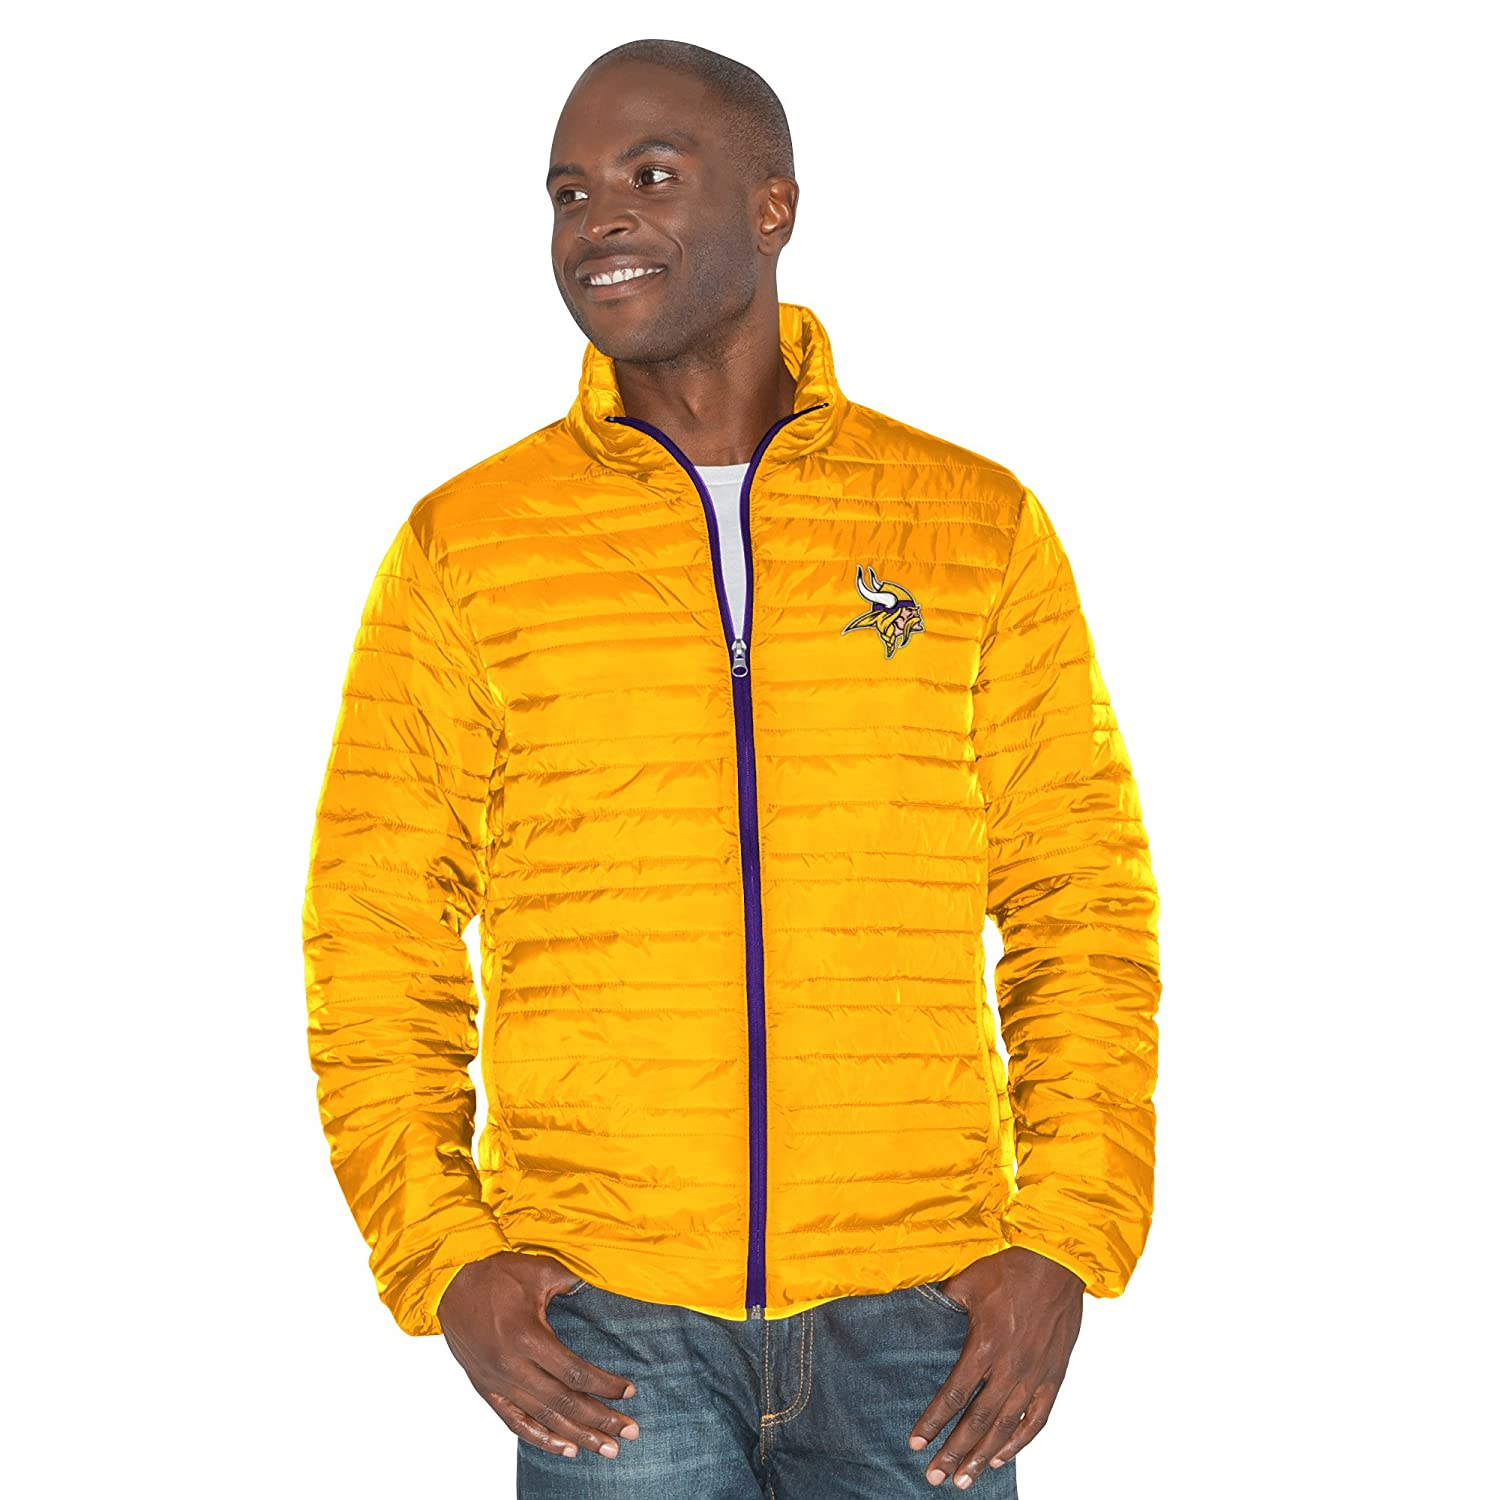 Large Gold//Purple G-III Mens Three and Out 3-in-1 Systems Jacket